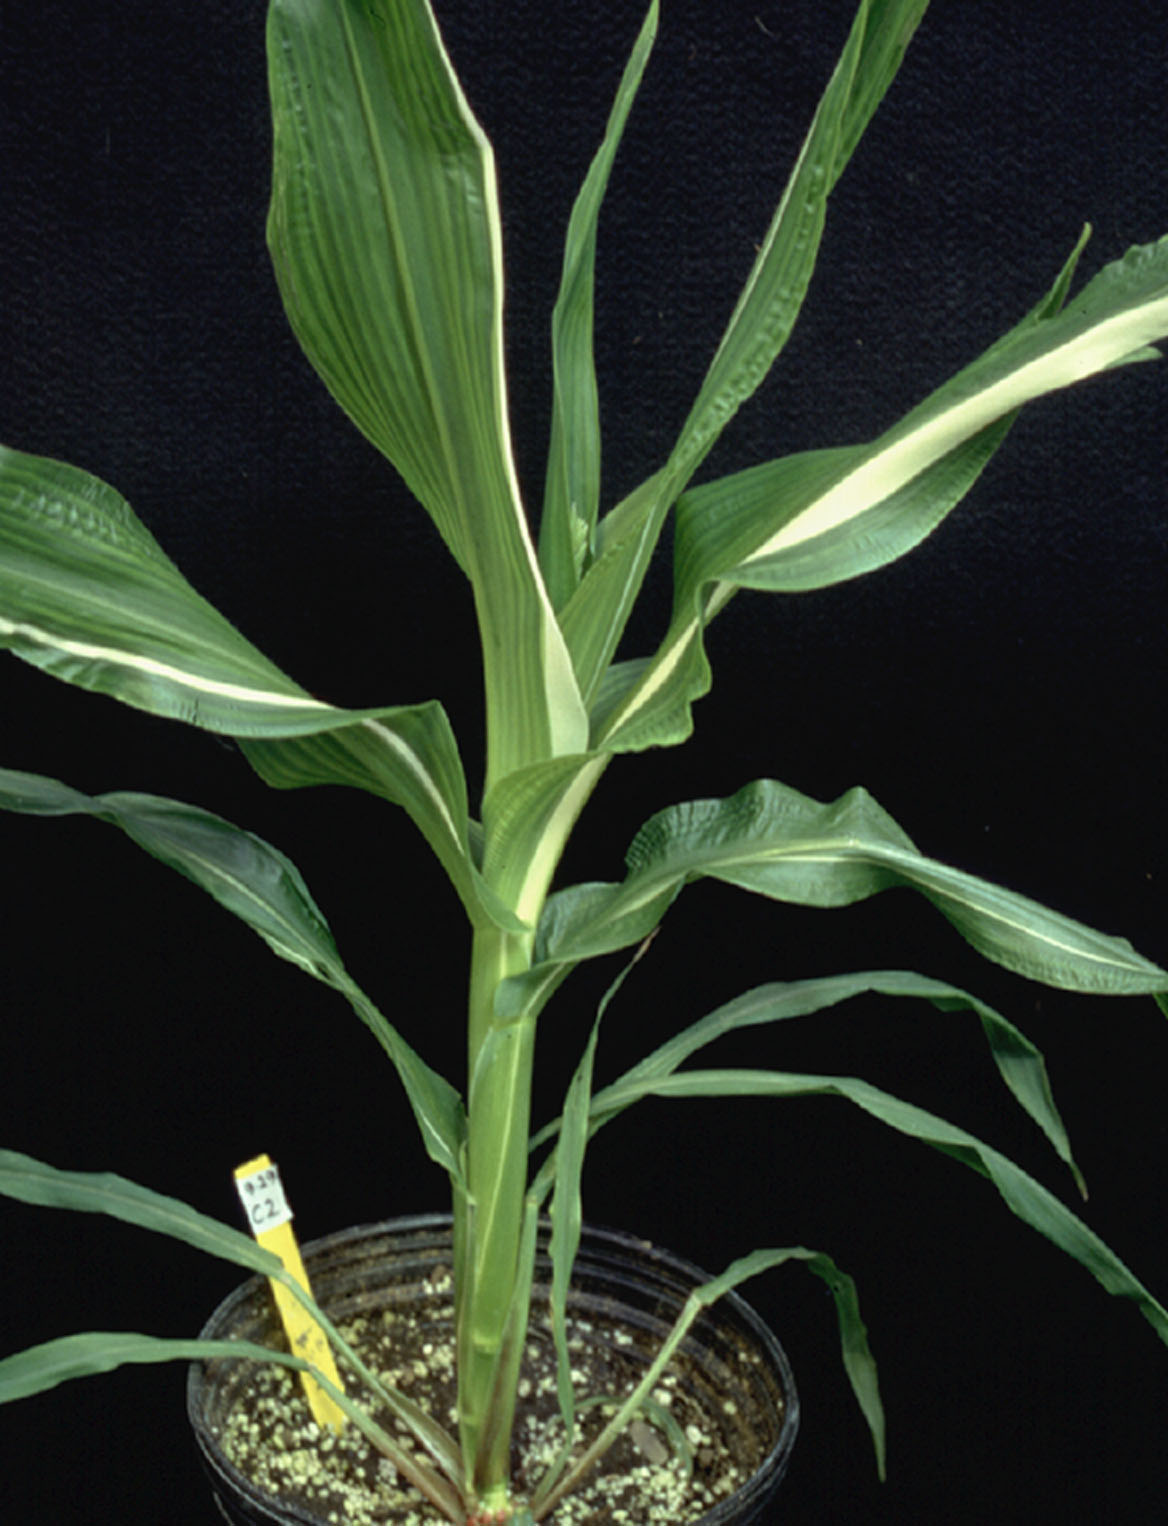 Maize plant derived from a cultured shoot apex that made twice the normal number of leaves (in total).